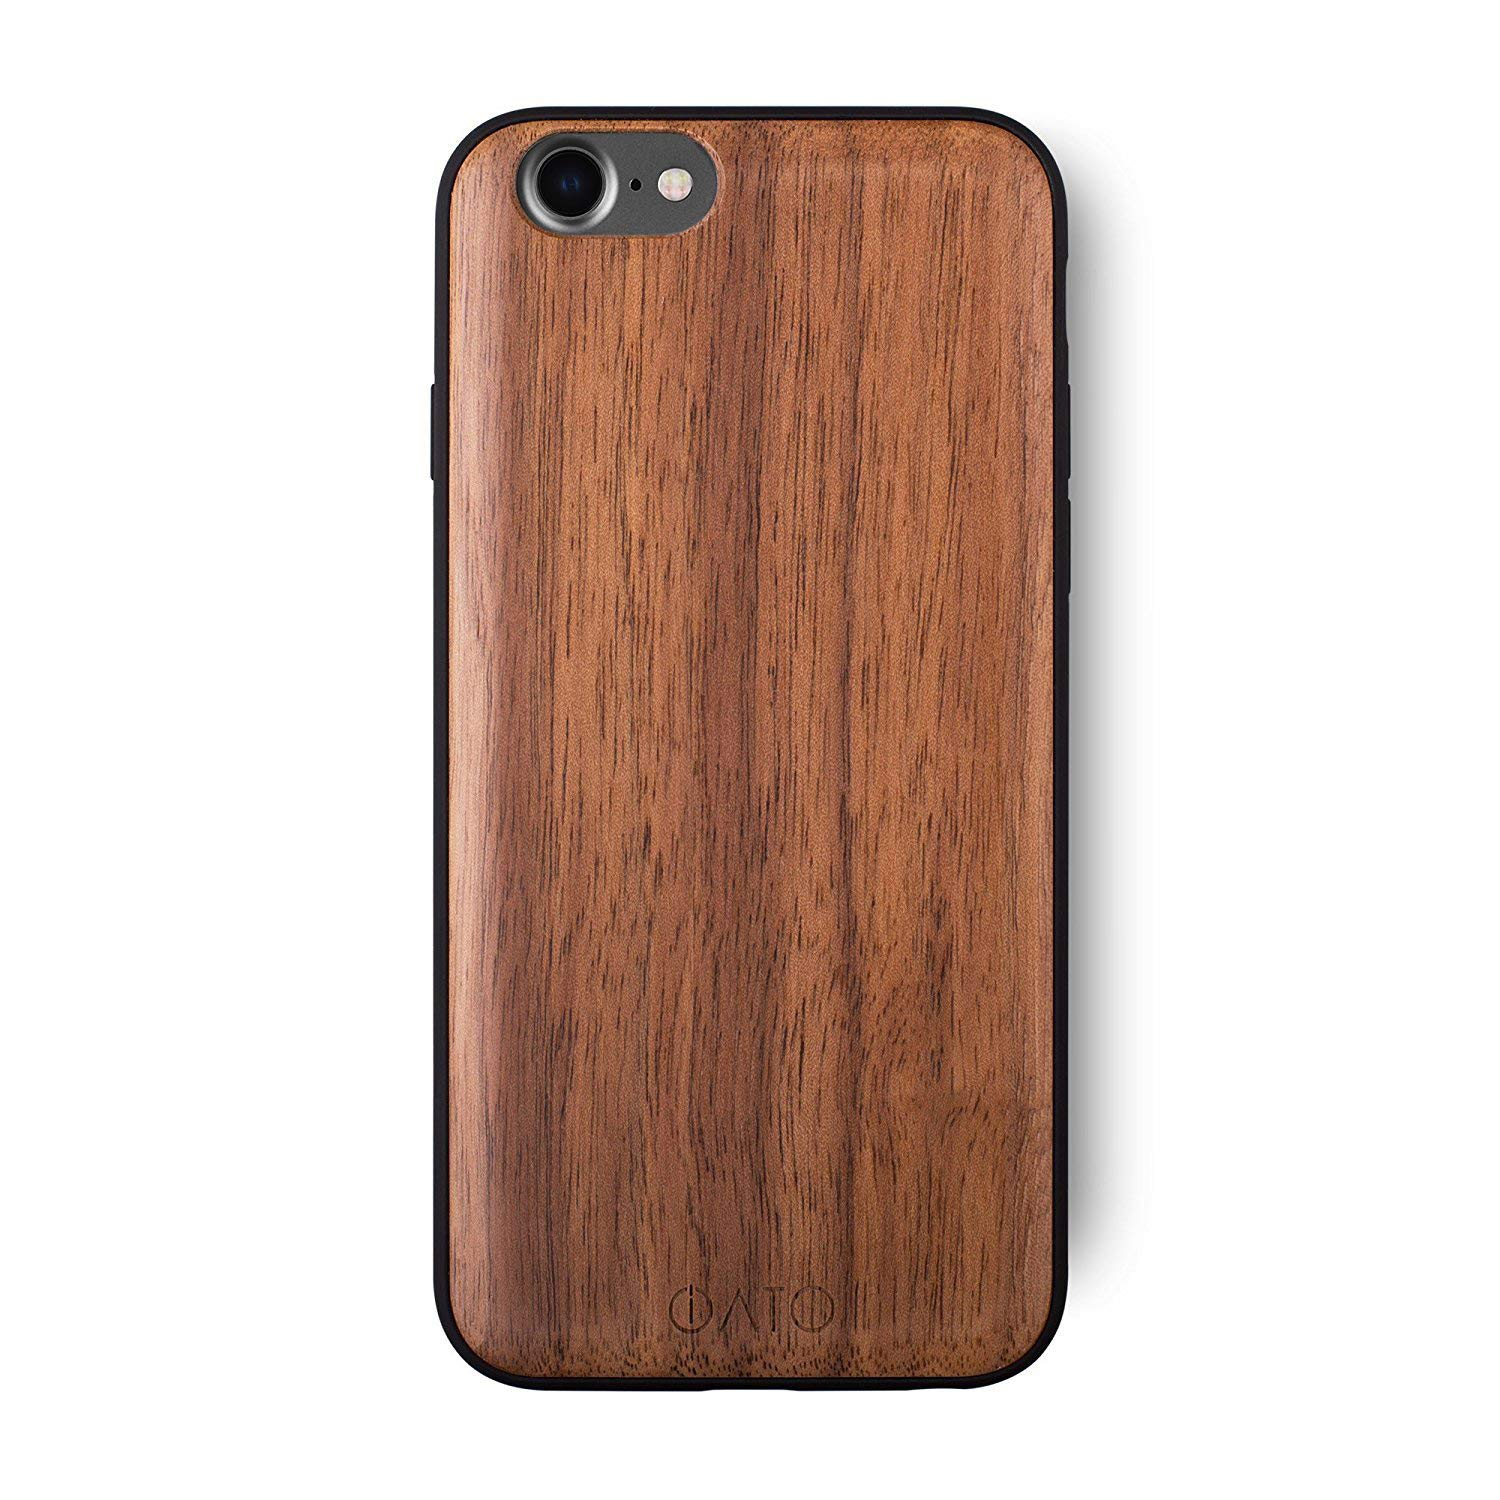 iato iphone 8 case